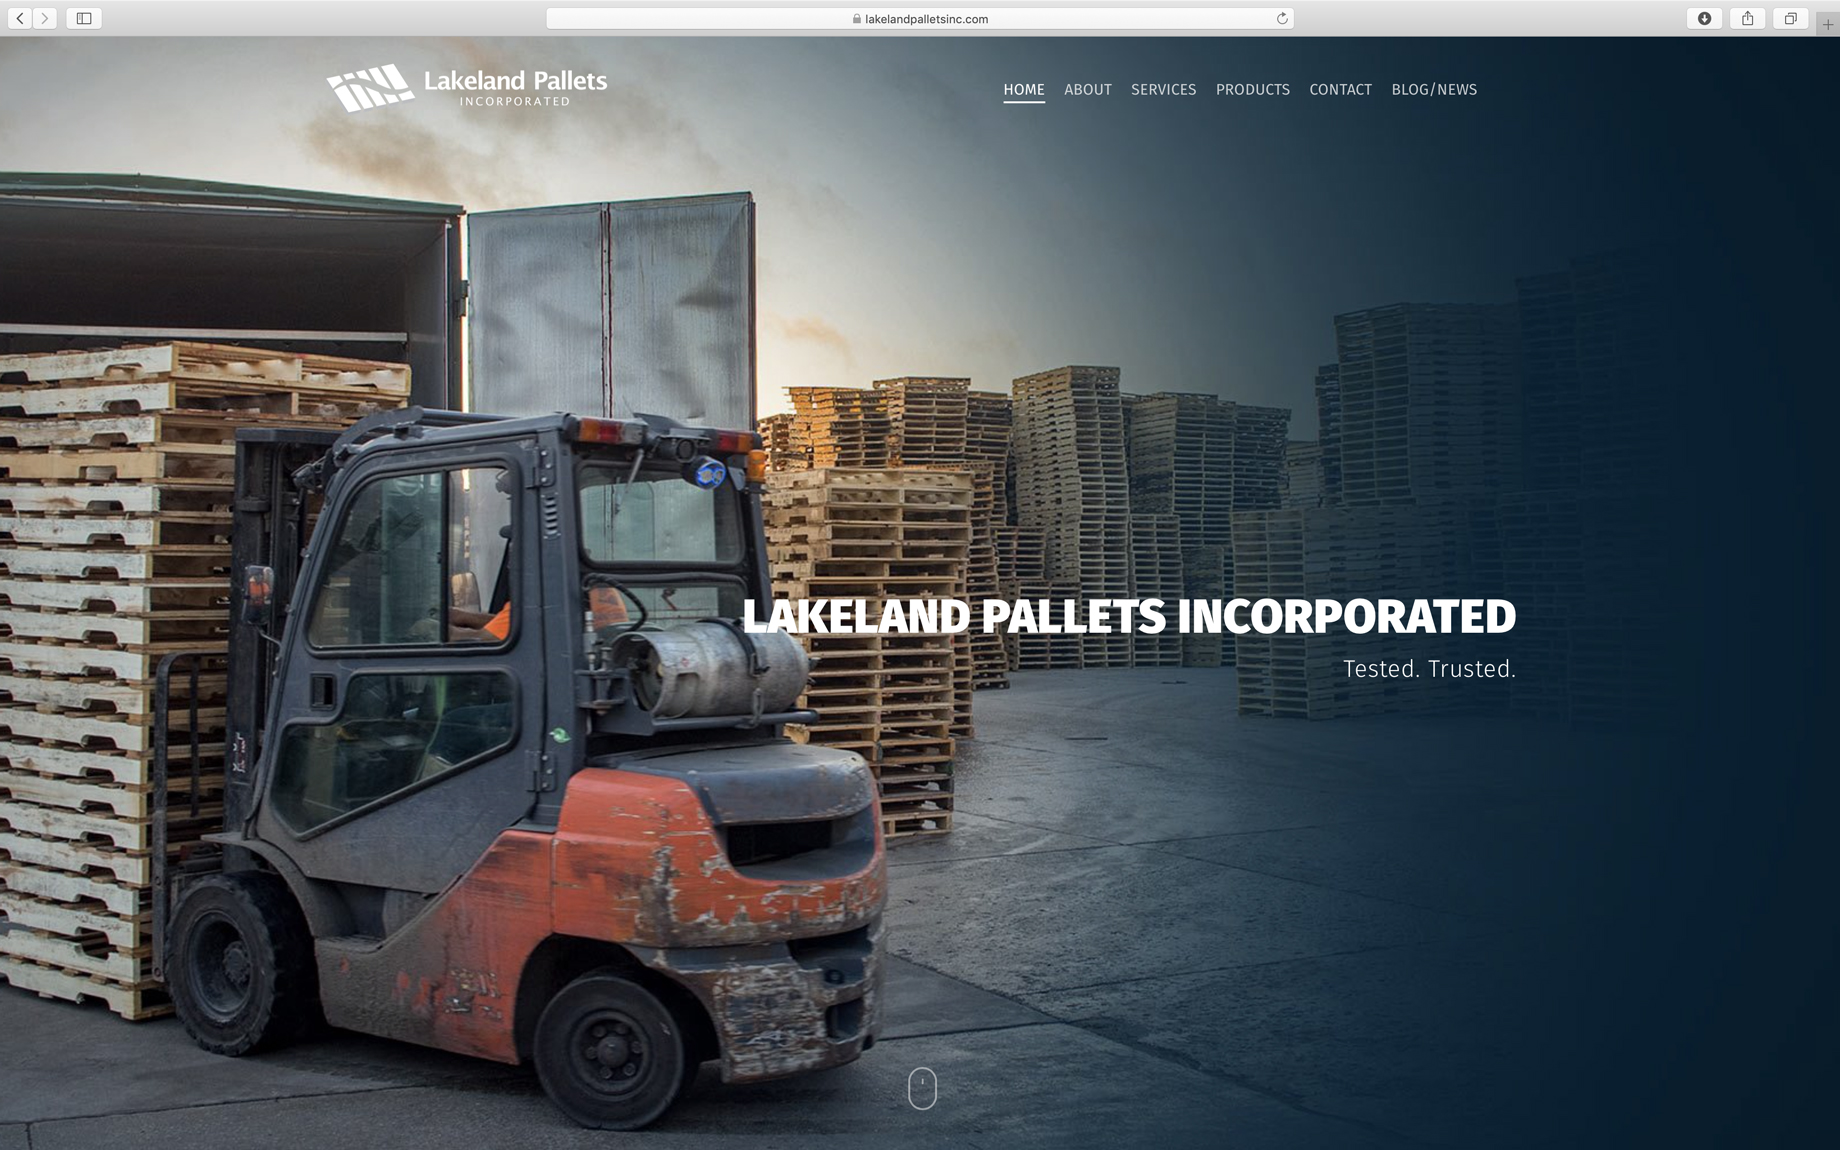 minimal homepage design industrial with high-quality custom photography